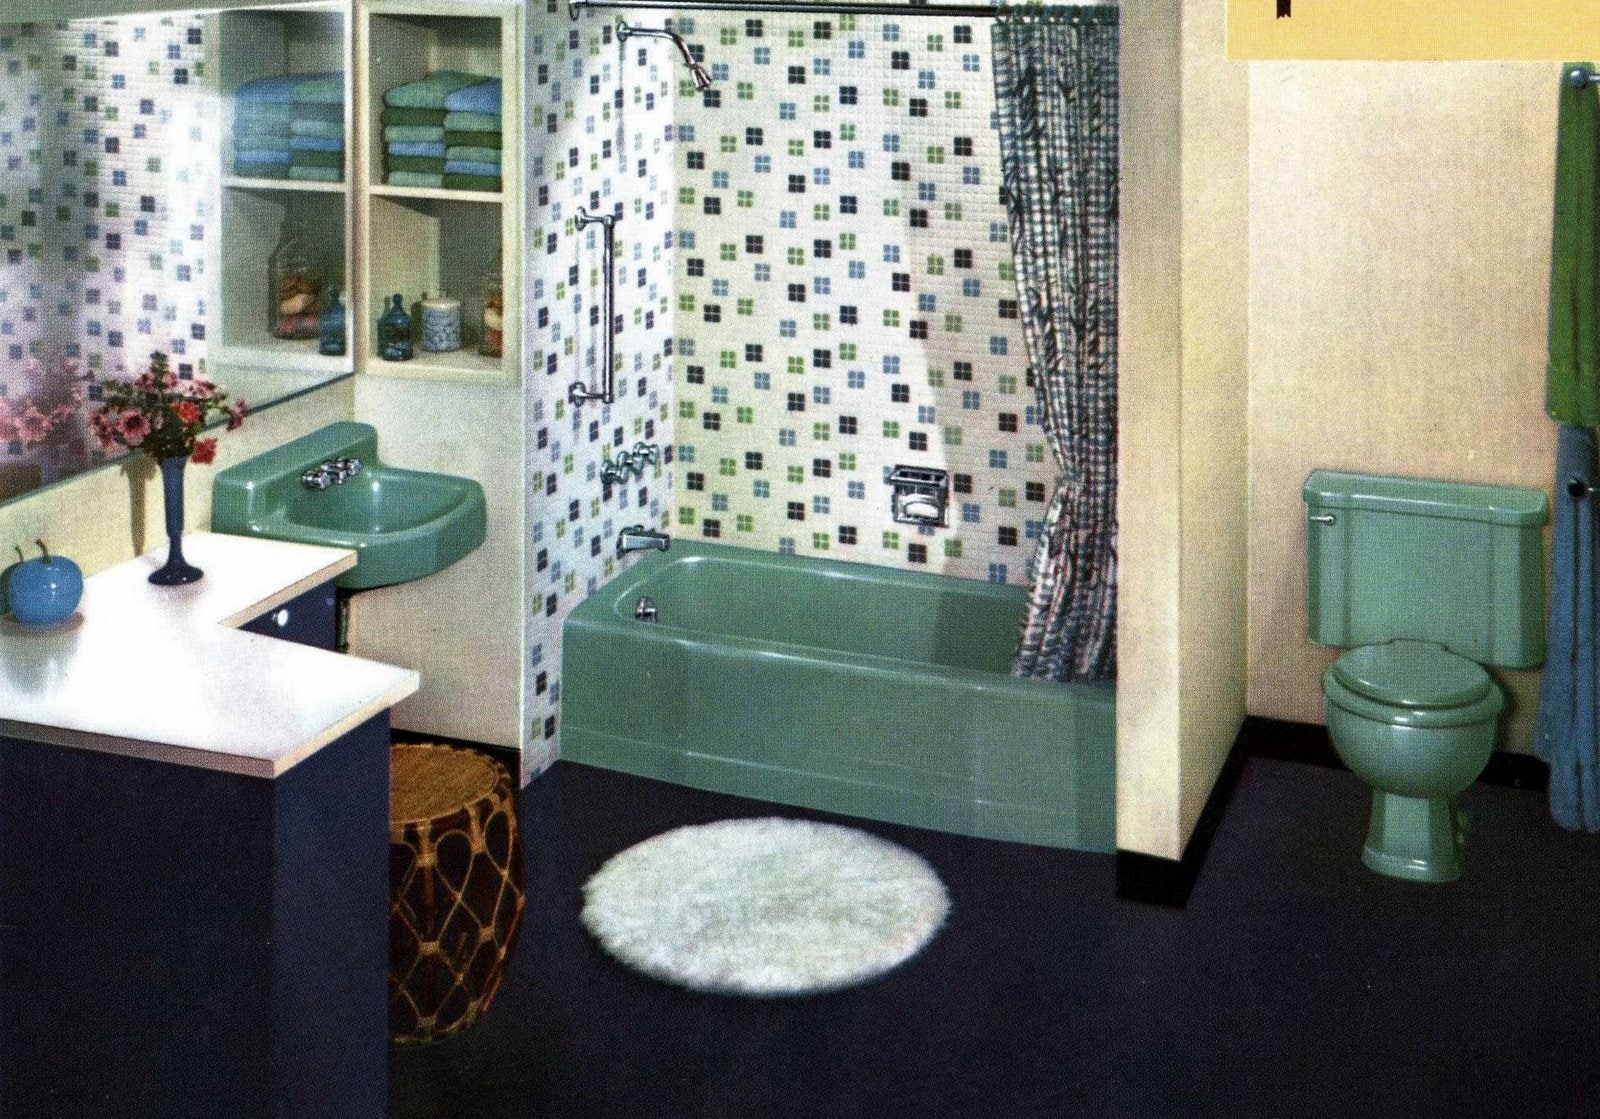 Retro fifties bathroom decor in jade green and navy blue with white accents